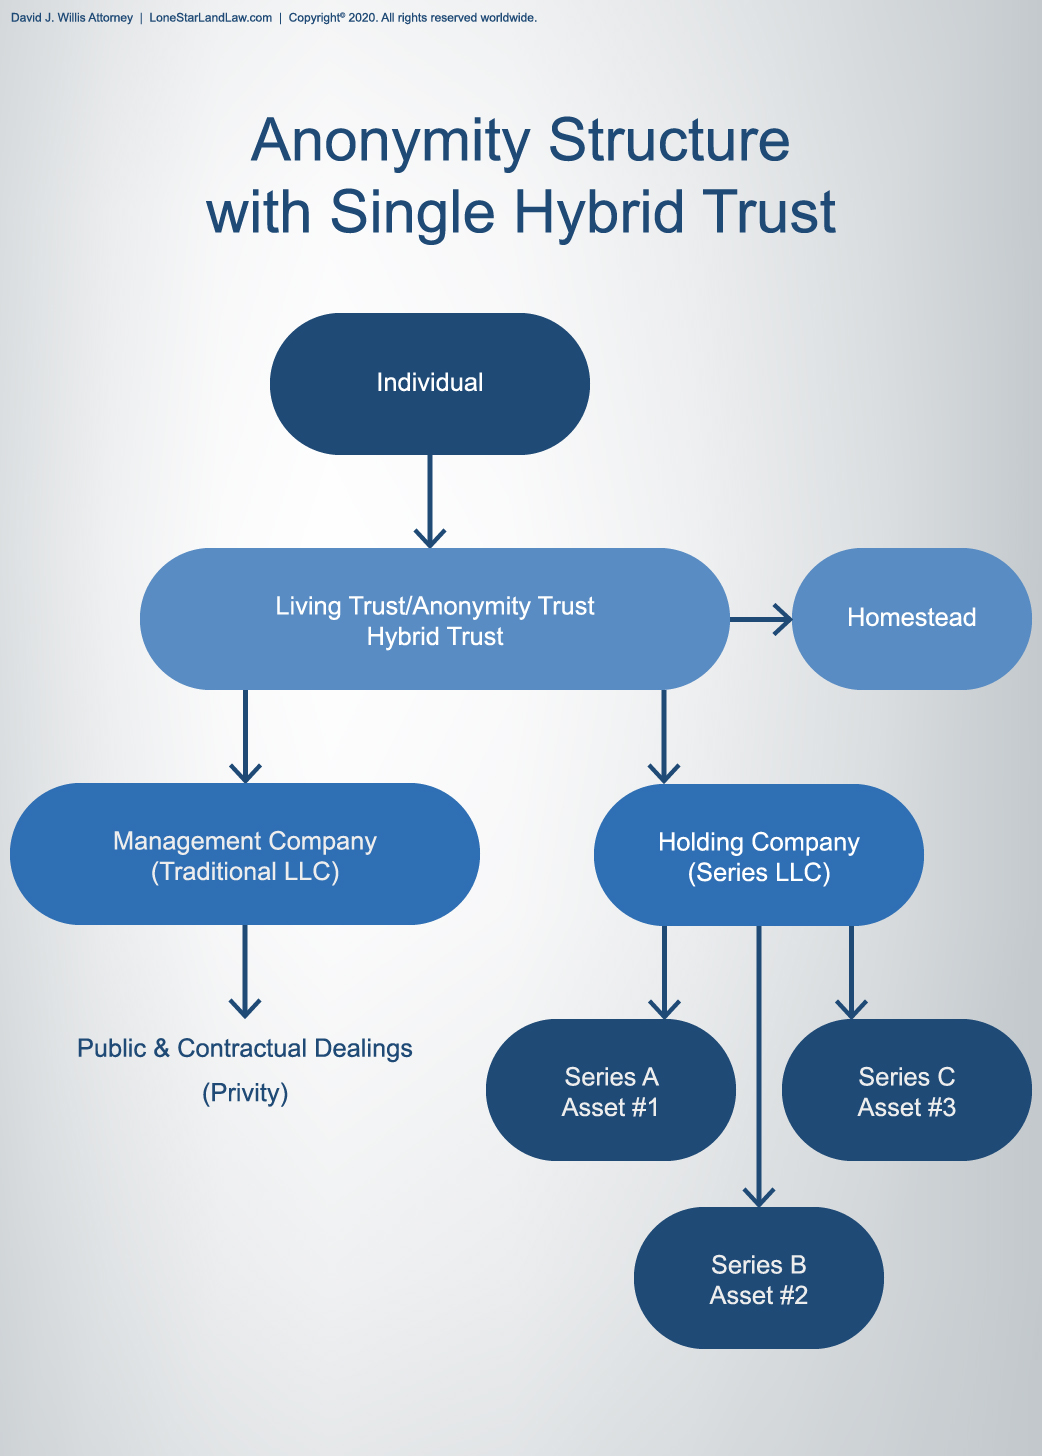 Anonymity Structure with Single Hybrid Trust